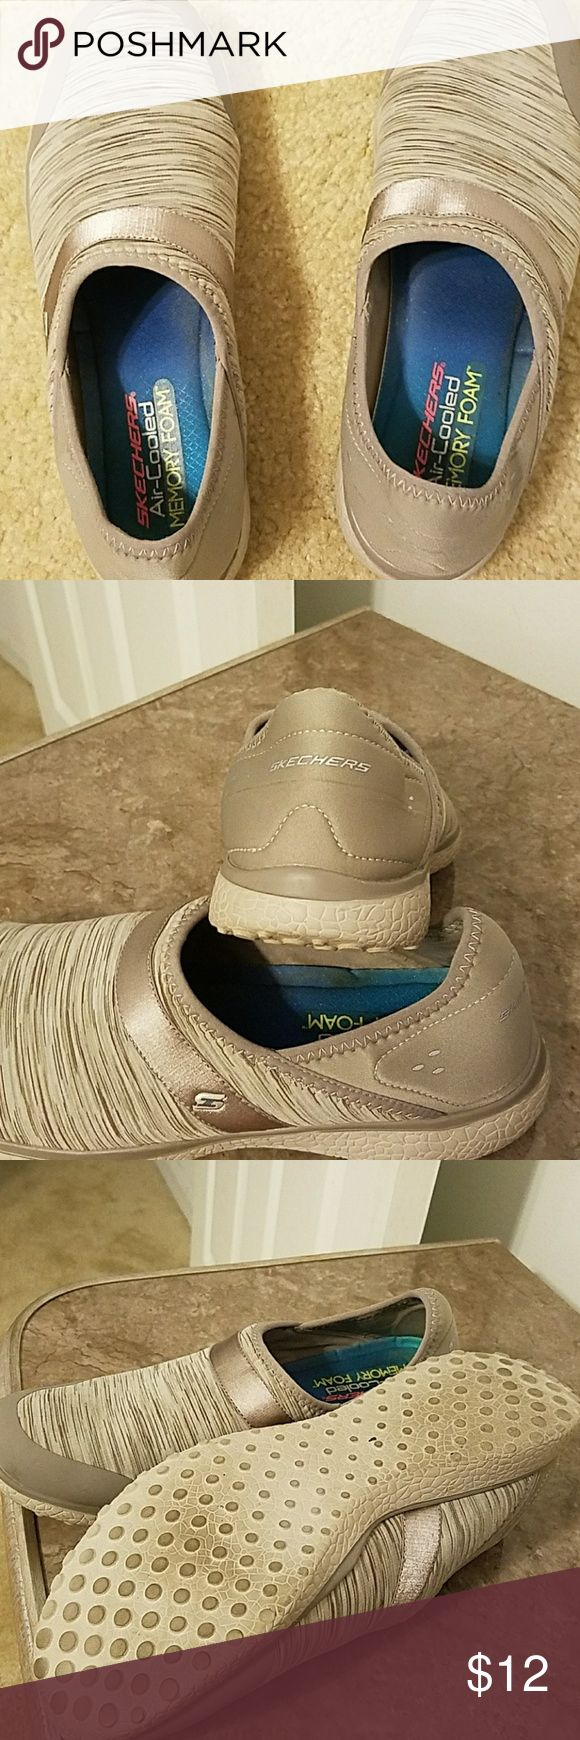 Women's Skechers Shoes Size 11 Air Cooled Memory Foam. Pull on. Gently worn. Skechers Shoes Sneakers